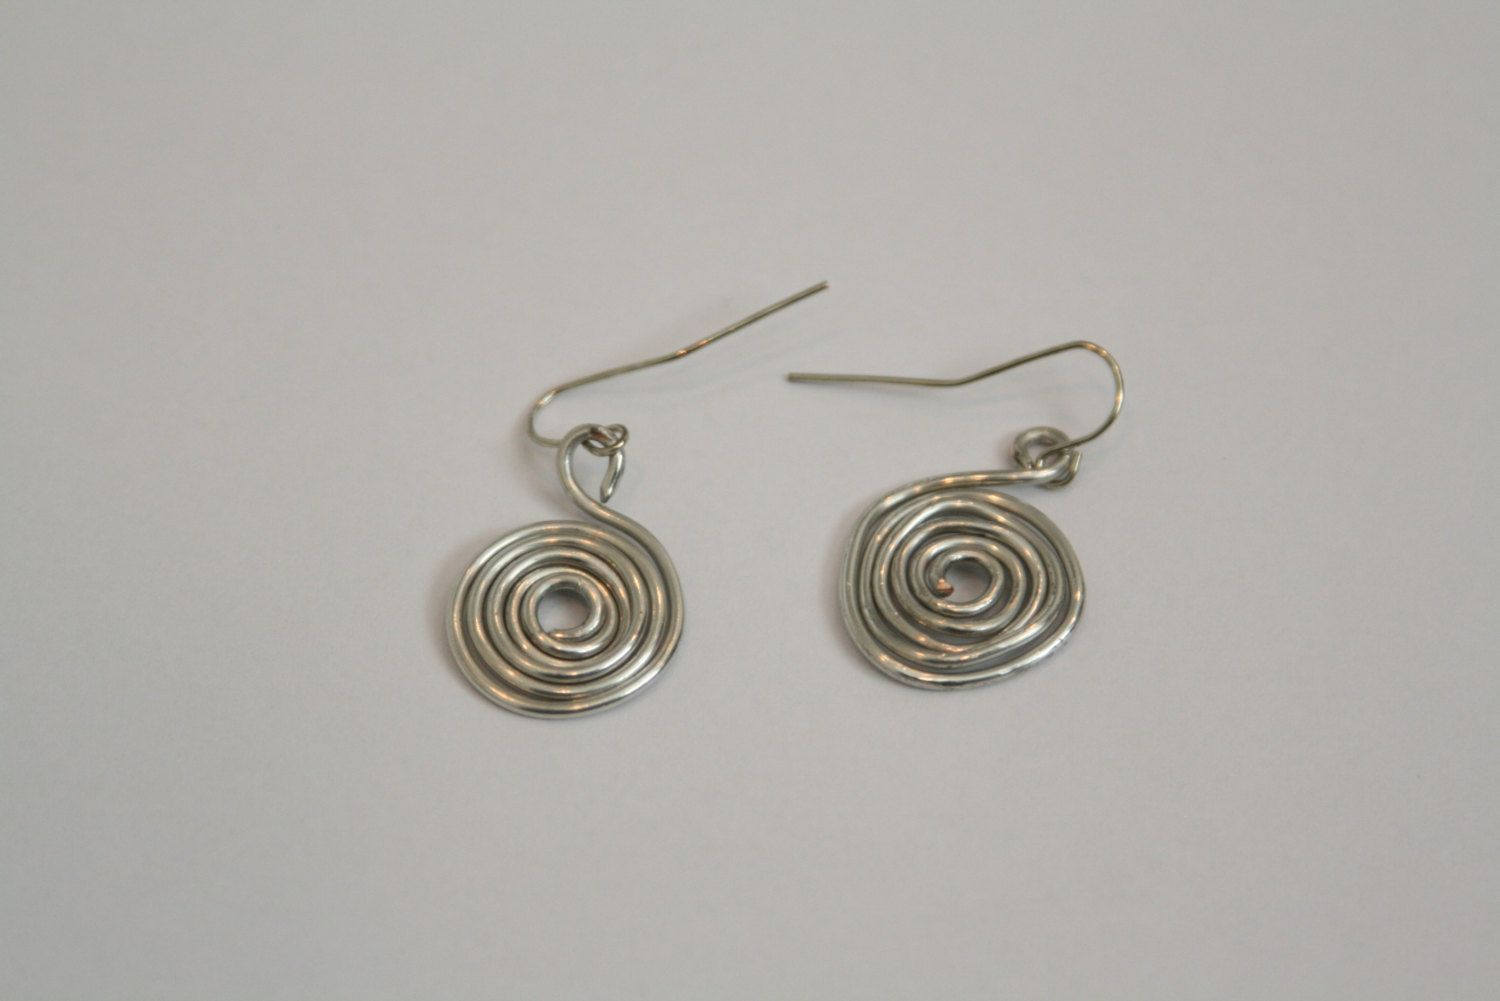 Handmade Silver Plated Copper Wire Spiral Earrings with Silver ...